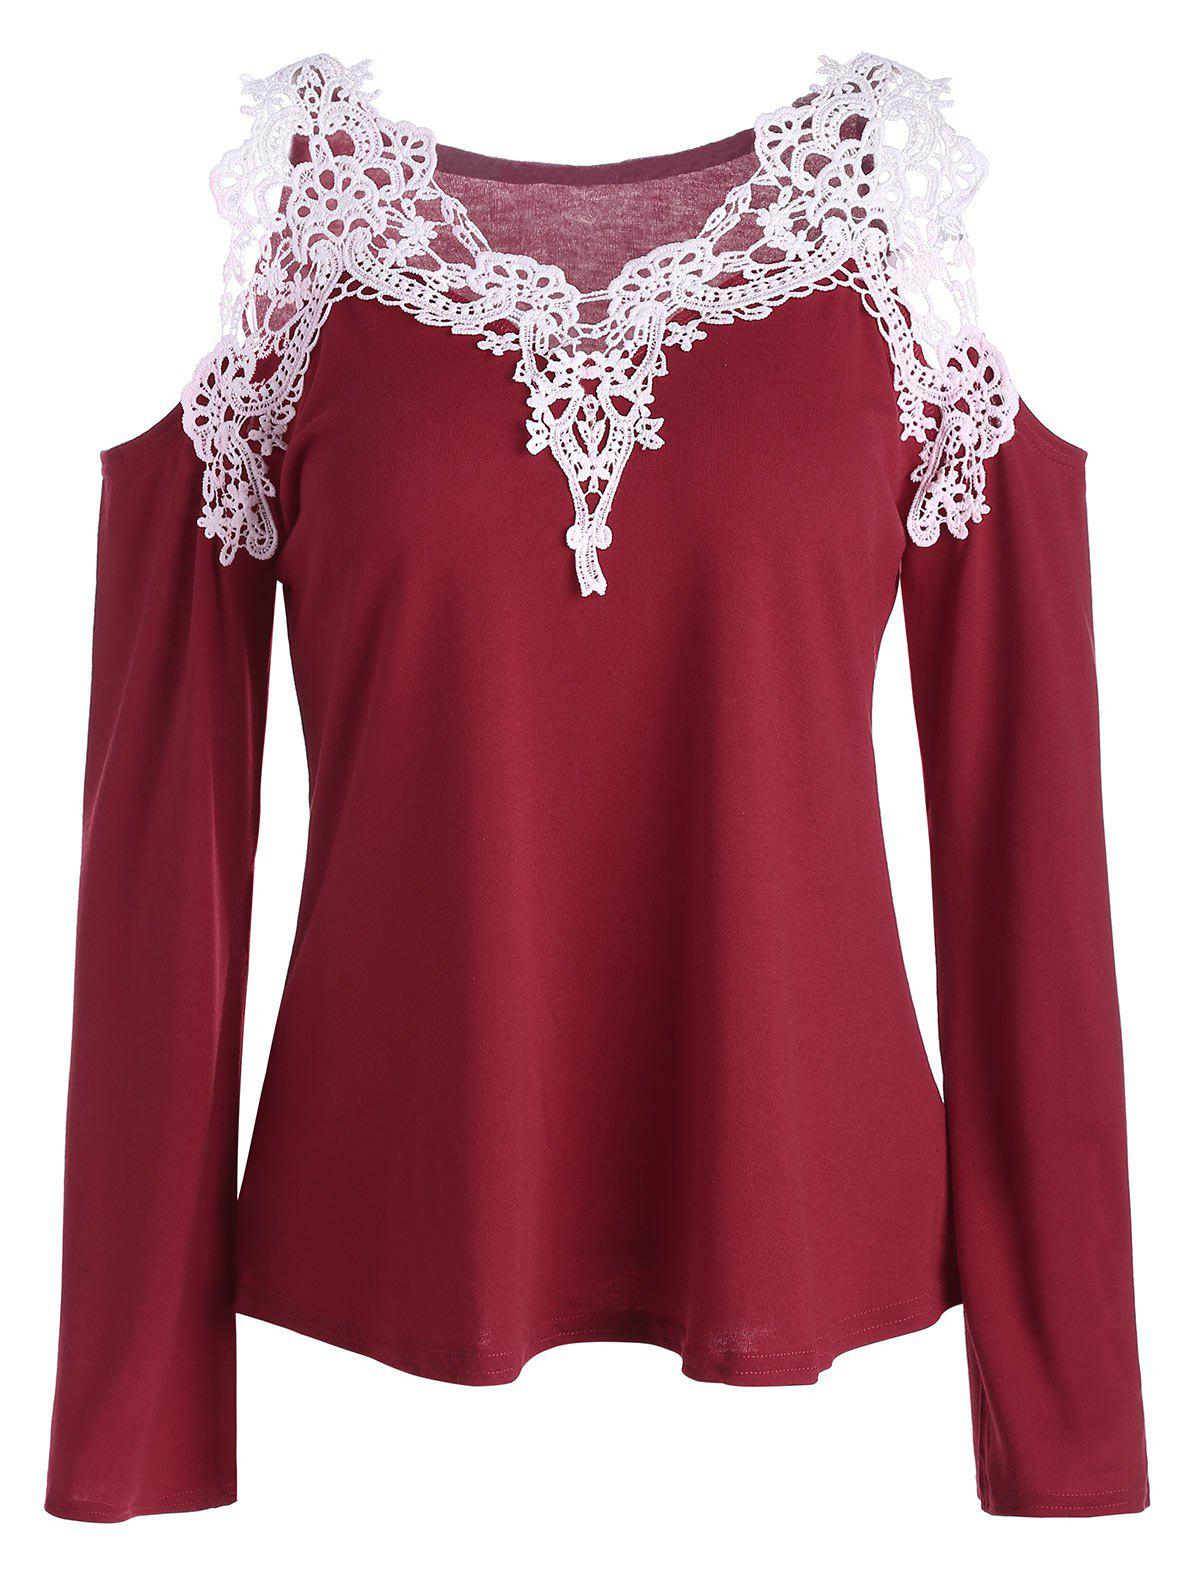 Cold Shoulder Lace Panel Color Block T-Shirt with Long SleeveWOMEN<br><br>Size: L; Color: RED; Material: Polyester; Sleeve Length: Full; Collar: V-Neck; Style: Fashion; Pattern Type: Patchwork; Season: Spring,Summer; Weight: 0.2130kg; Package Contents: 1 x T-Shirt;